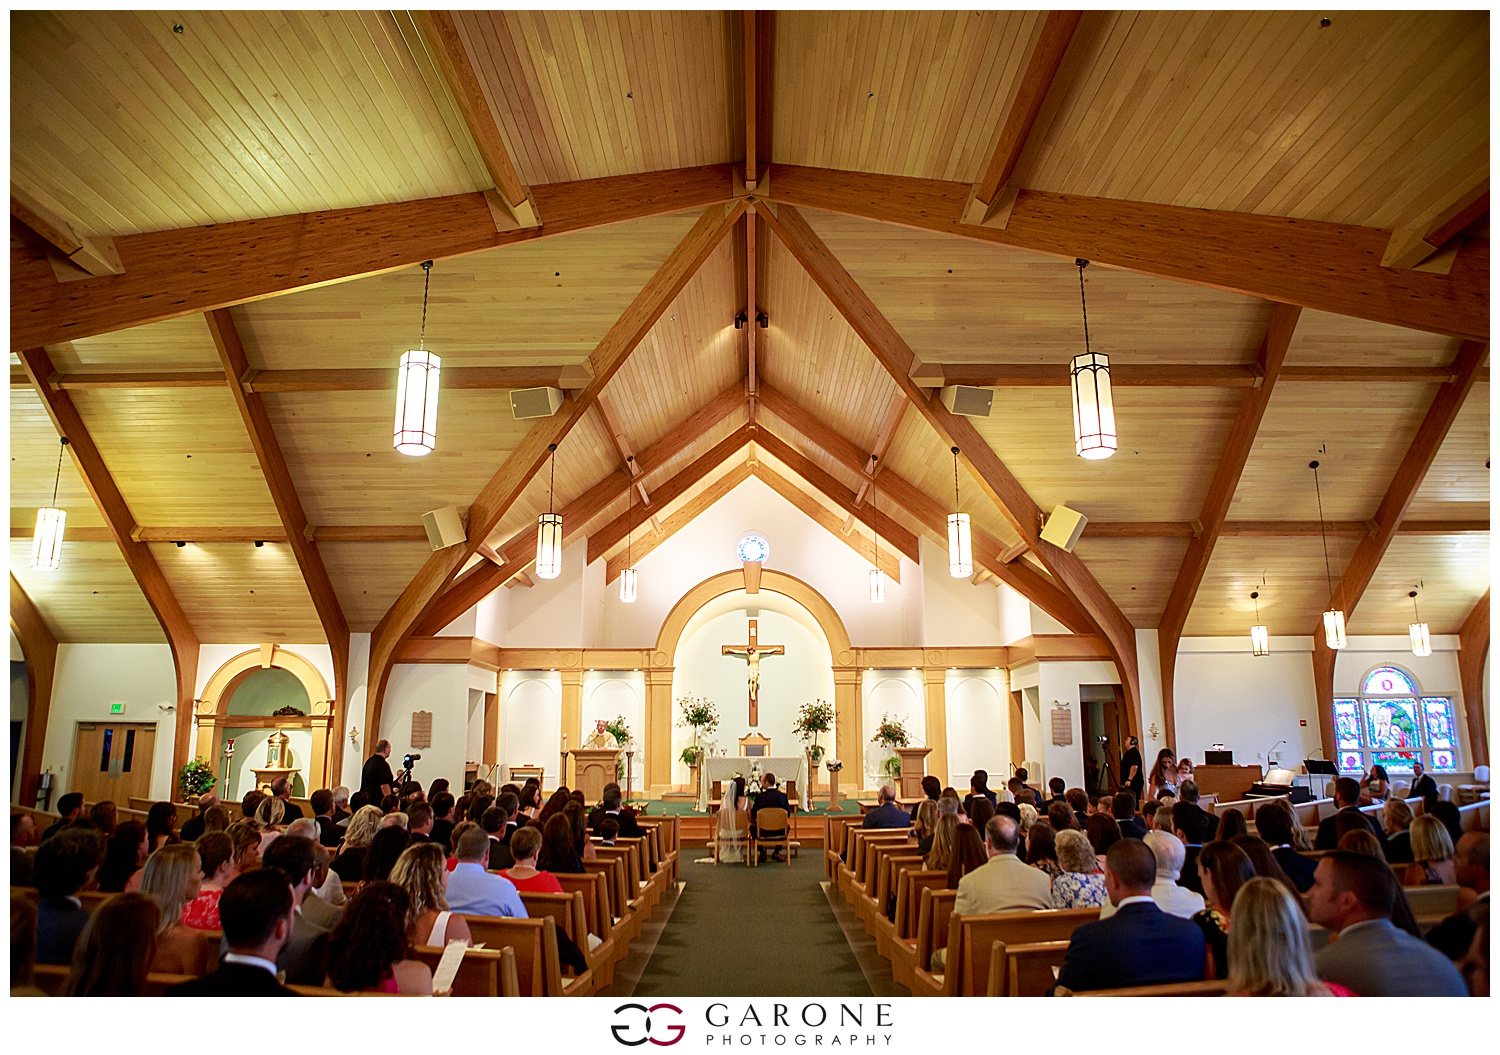 Church_Landing_Garone_Photography_Wedding_Sarah_Patrick_0025.jpg